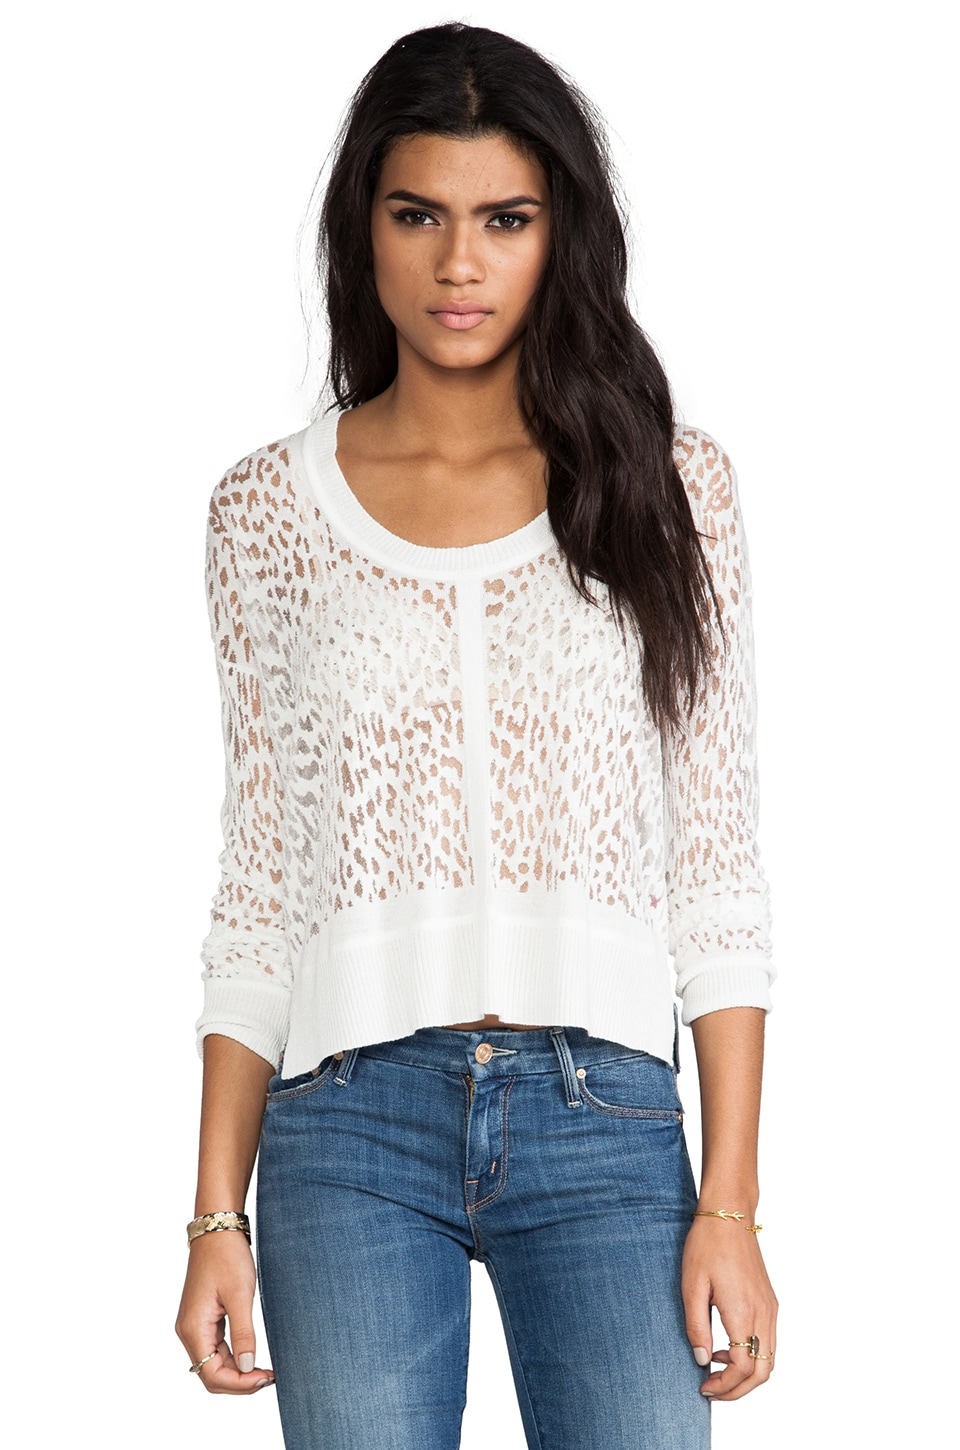 Parker Rubina Sweater in Cream